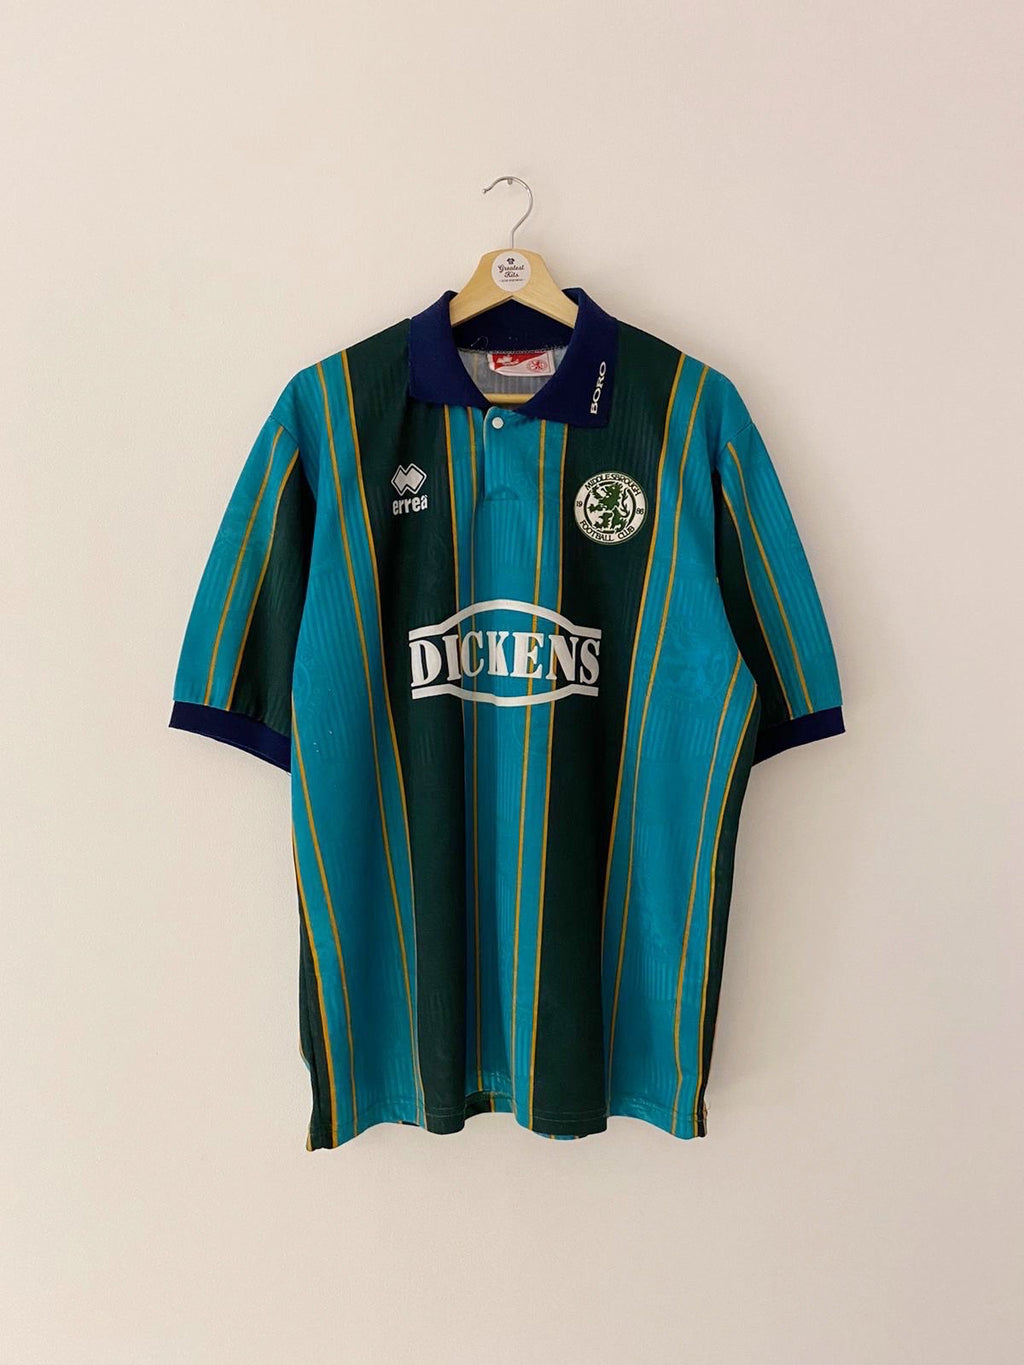 1994/95 Middlesbrough Away Shirt (L) 8.5/10